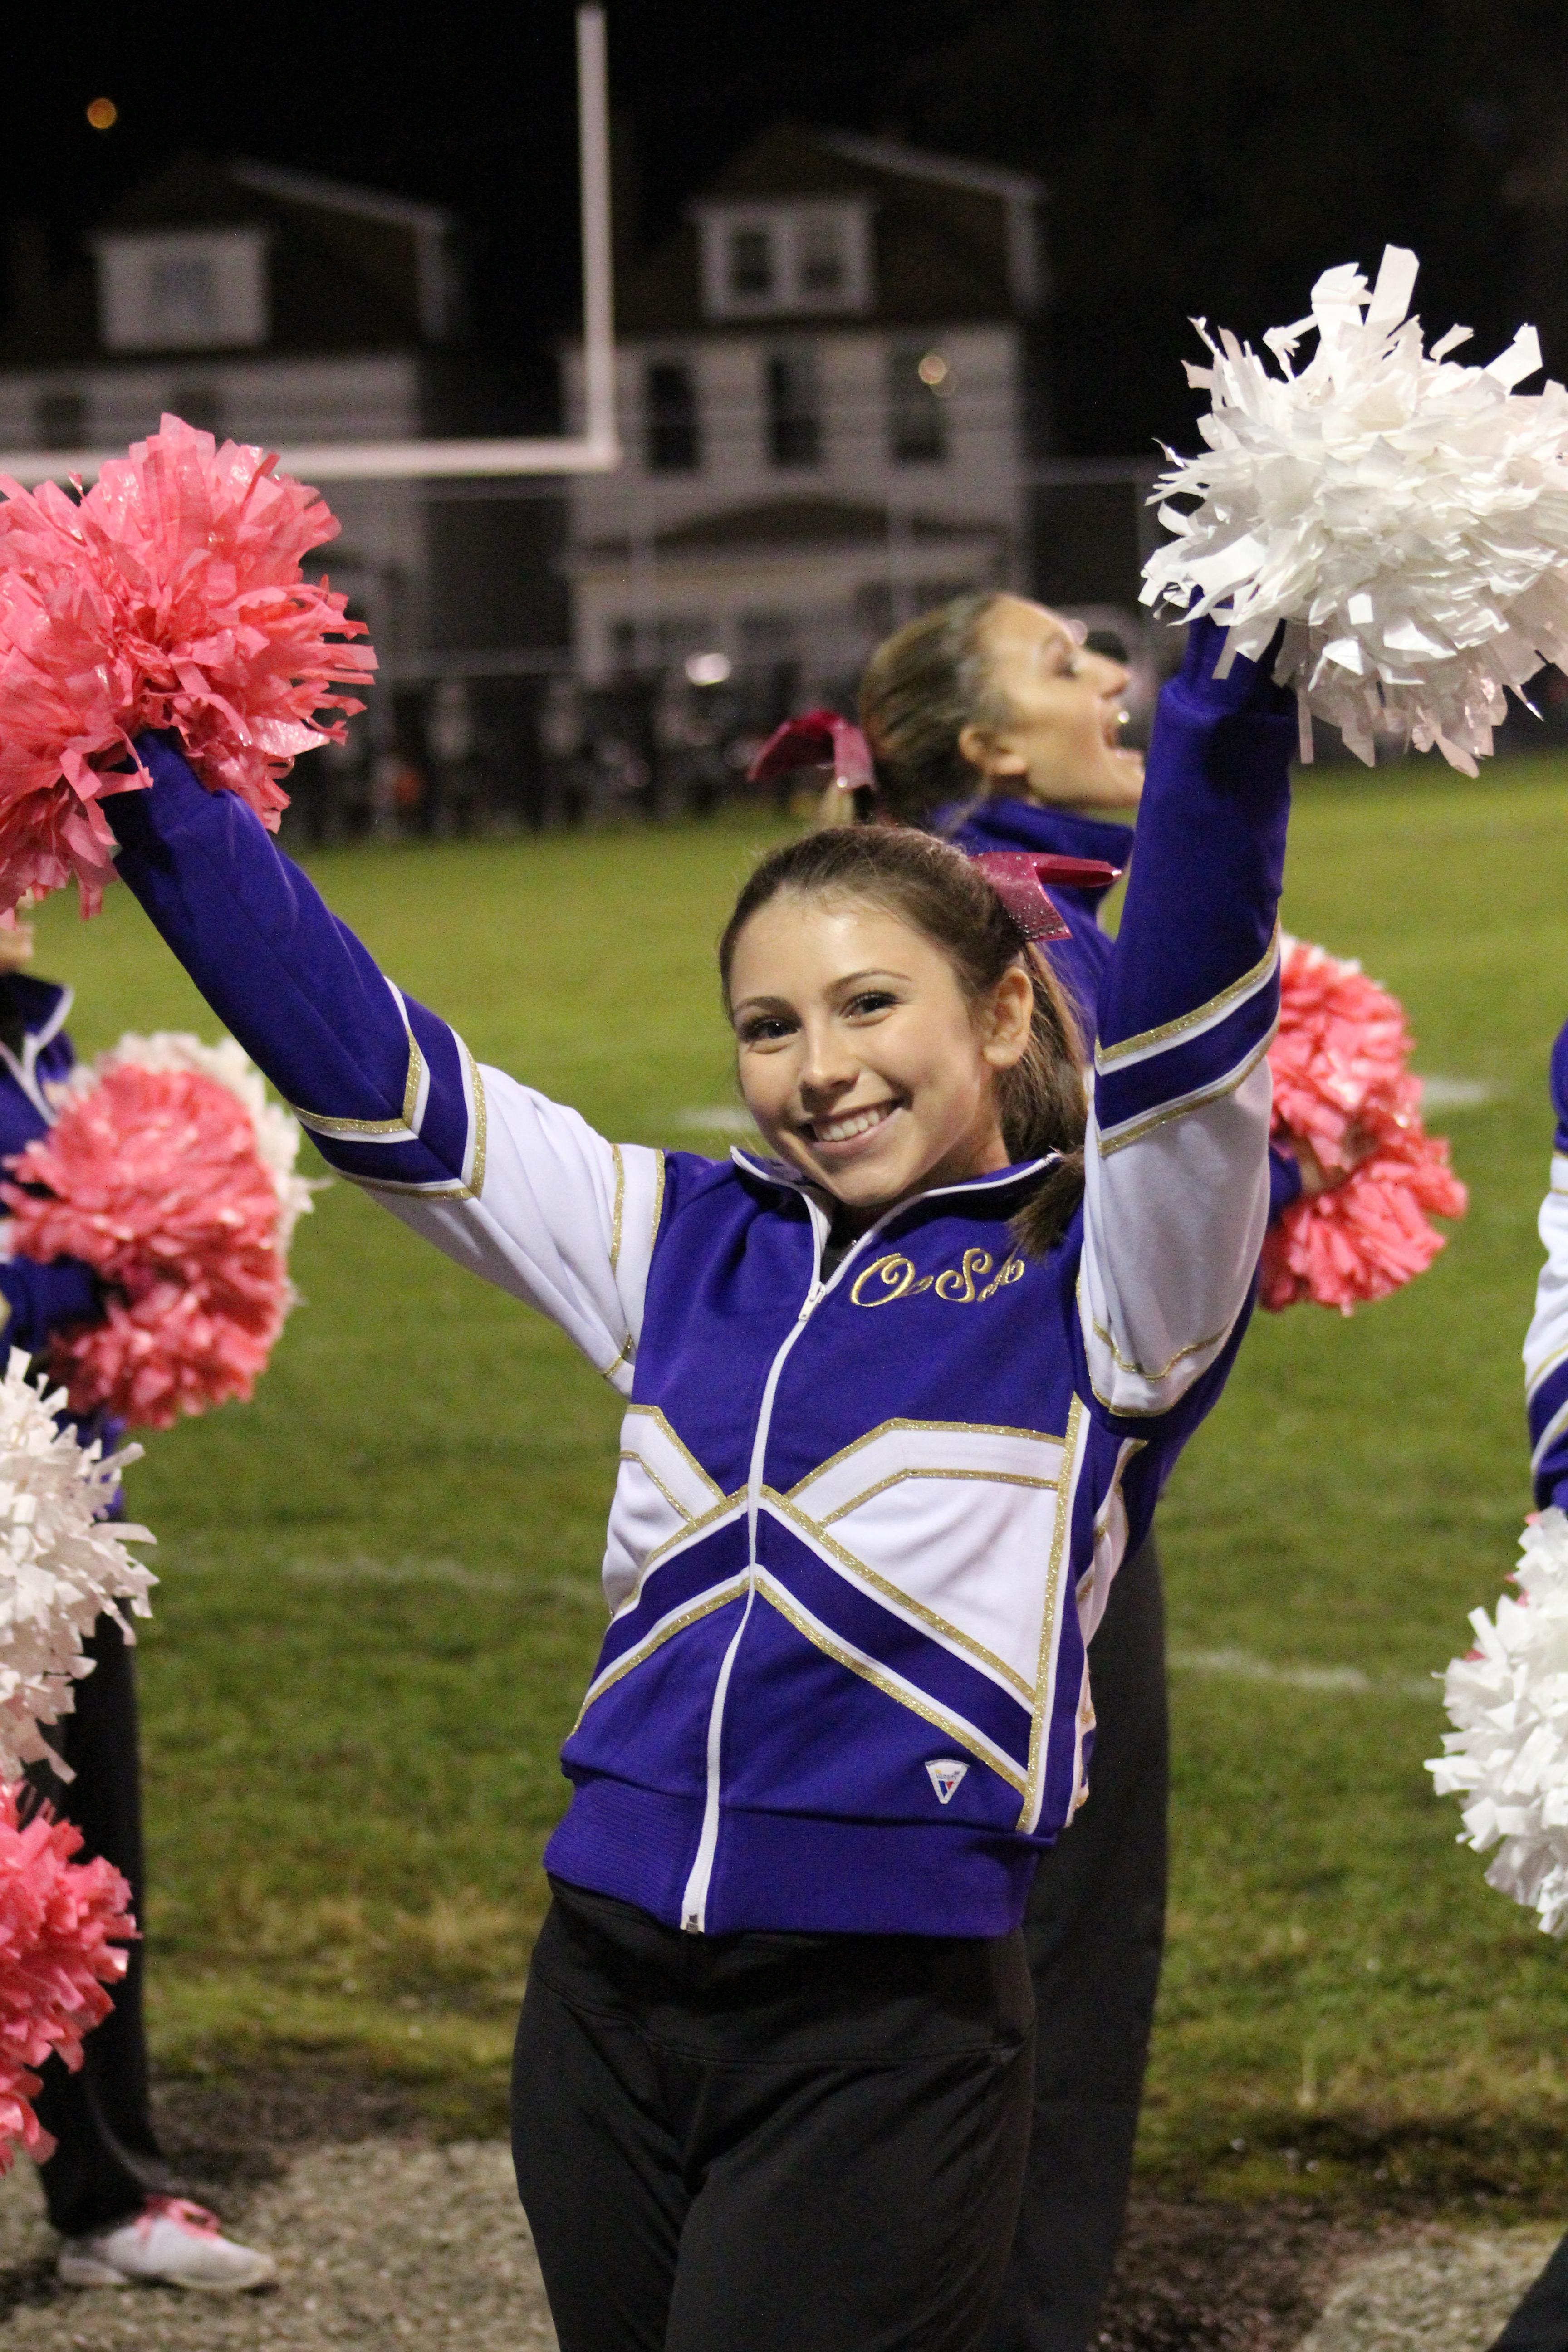 Alex leads the crowd in a cheer at a football game